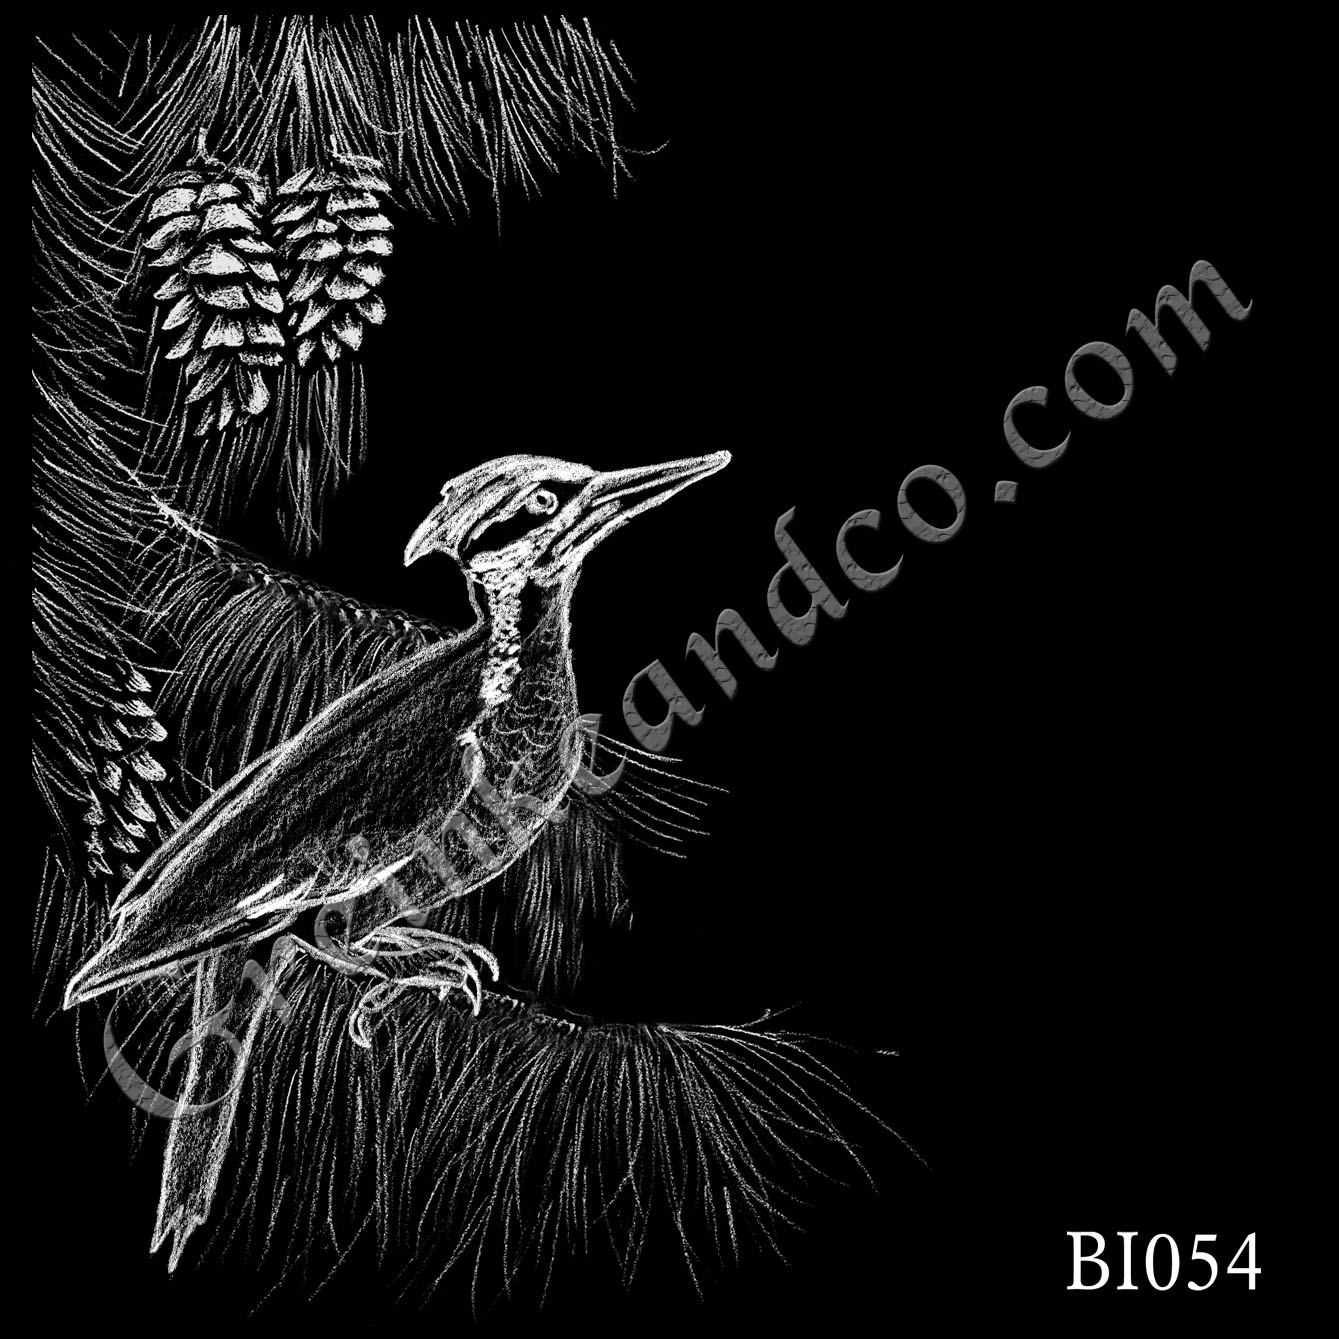 BI054 - Woodpecker Pine Branch